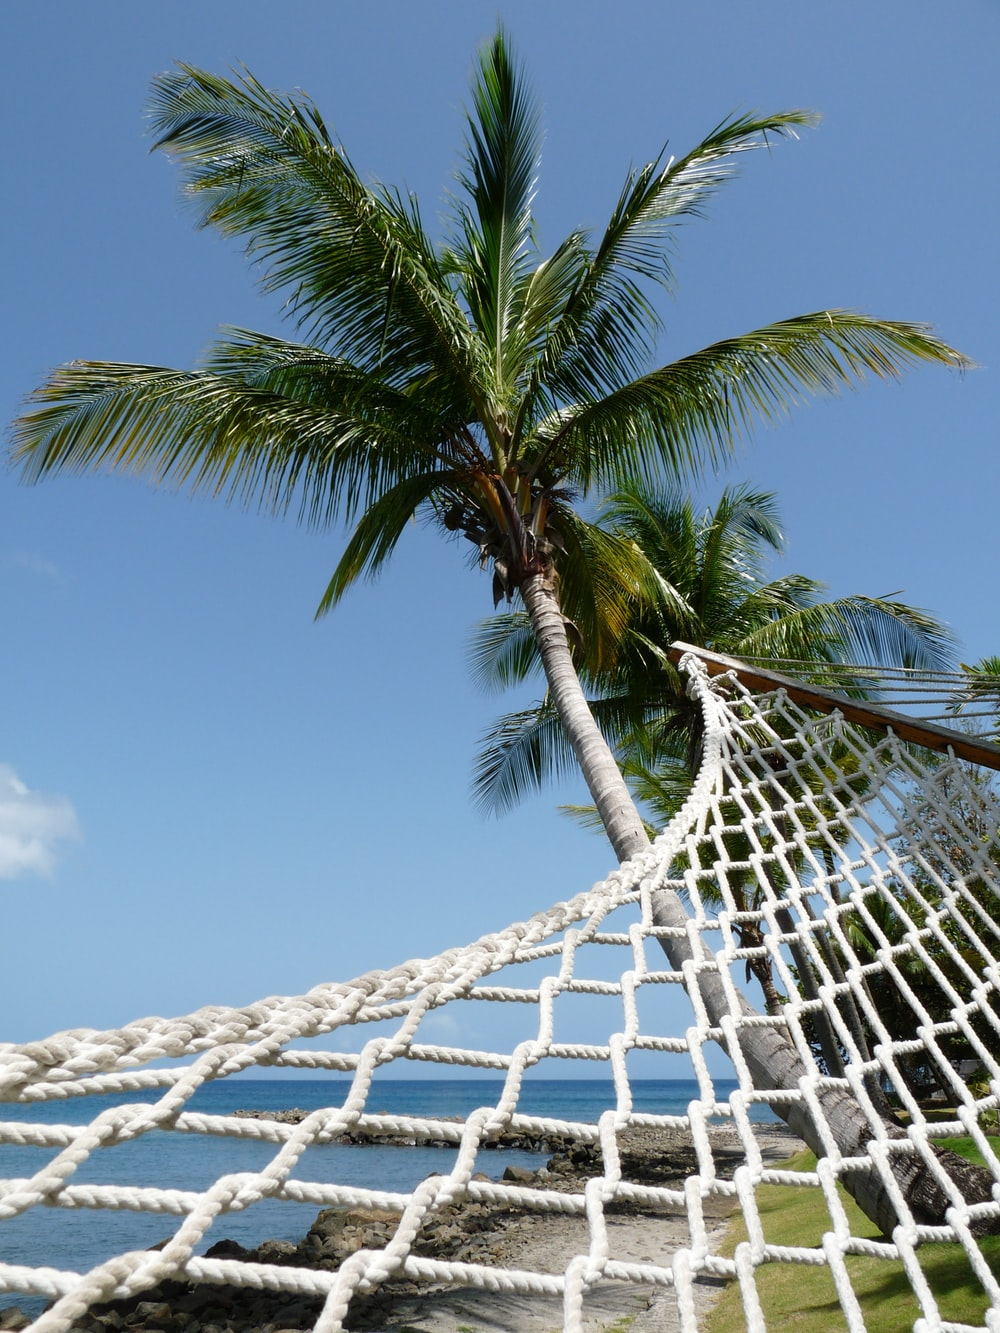 scenery of a hammock on a green palm tree